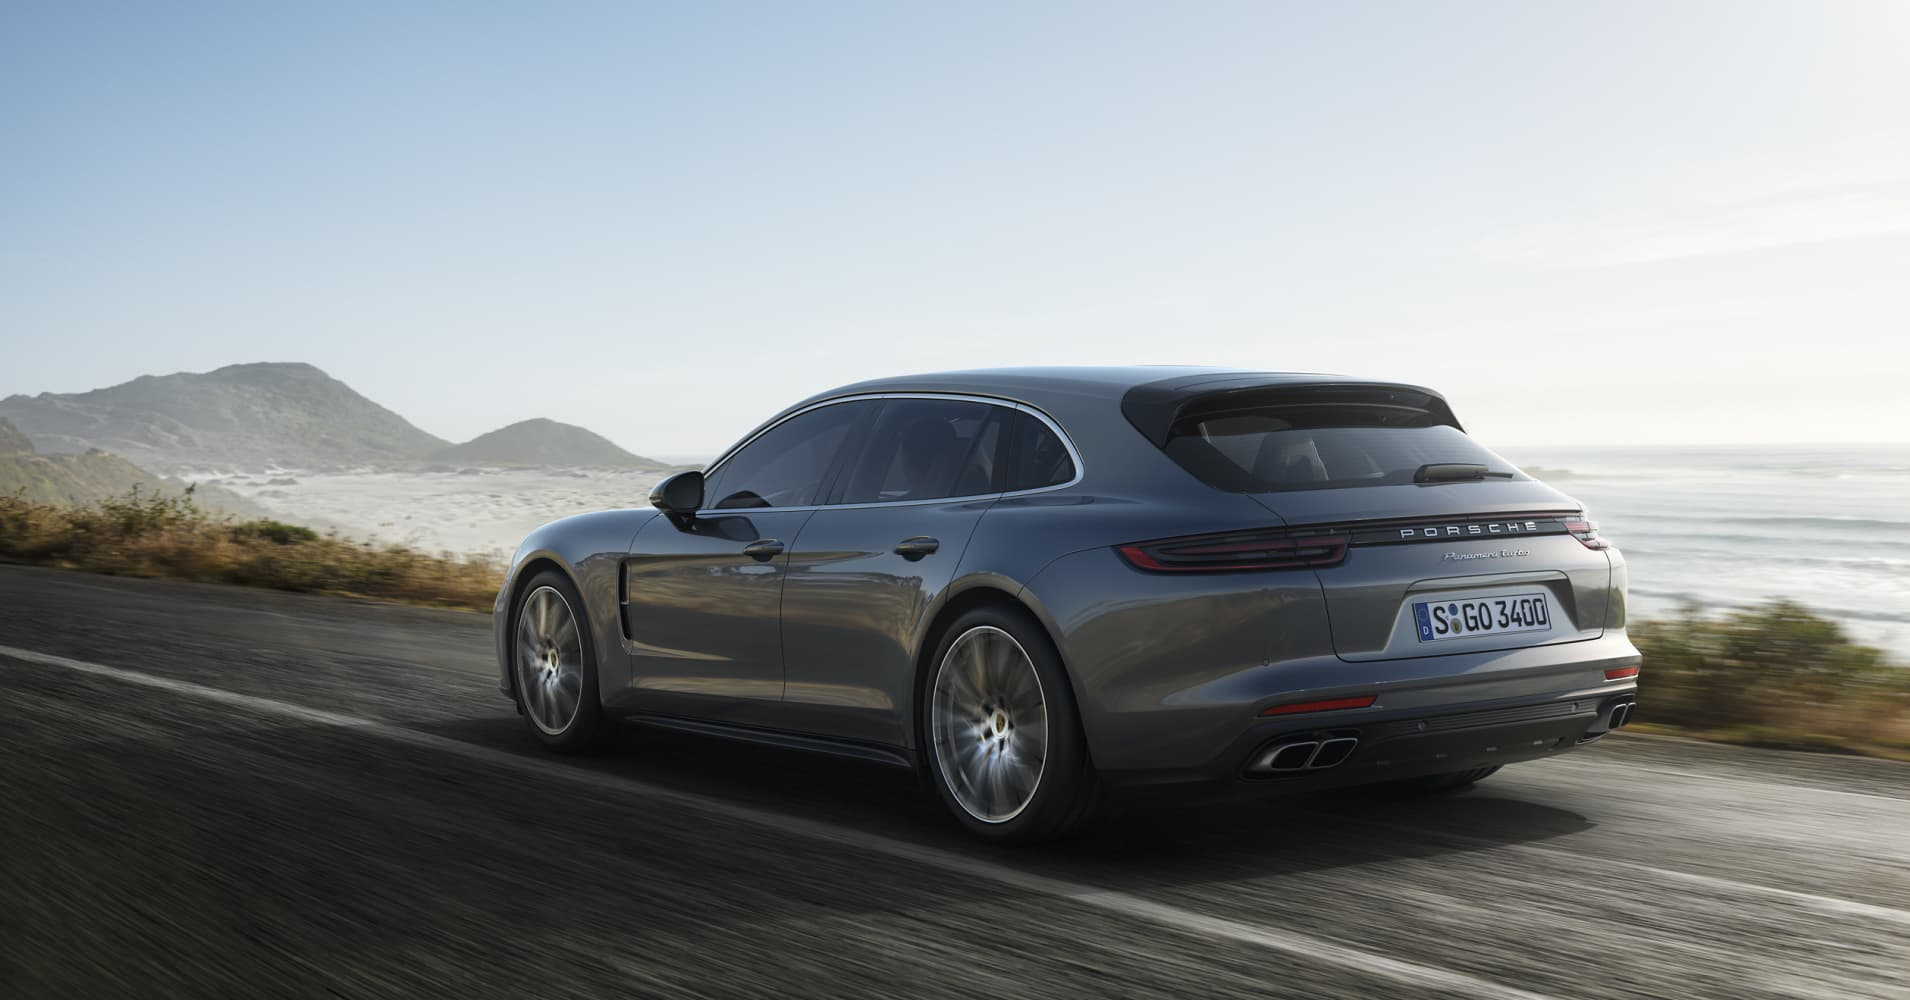 Porsche executive talks about keeping up with Tesla